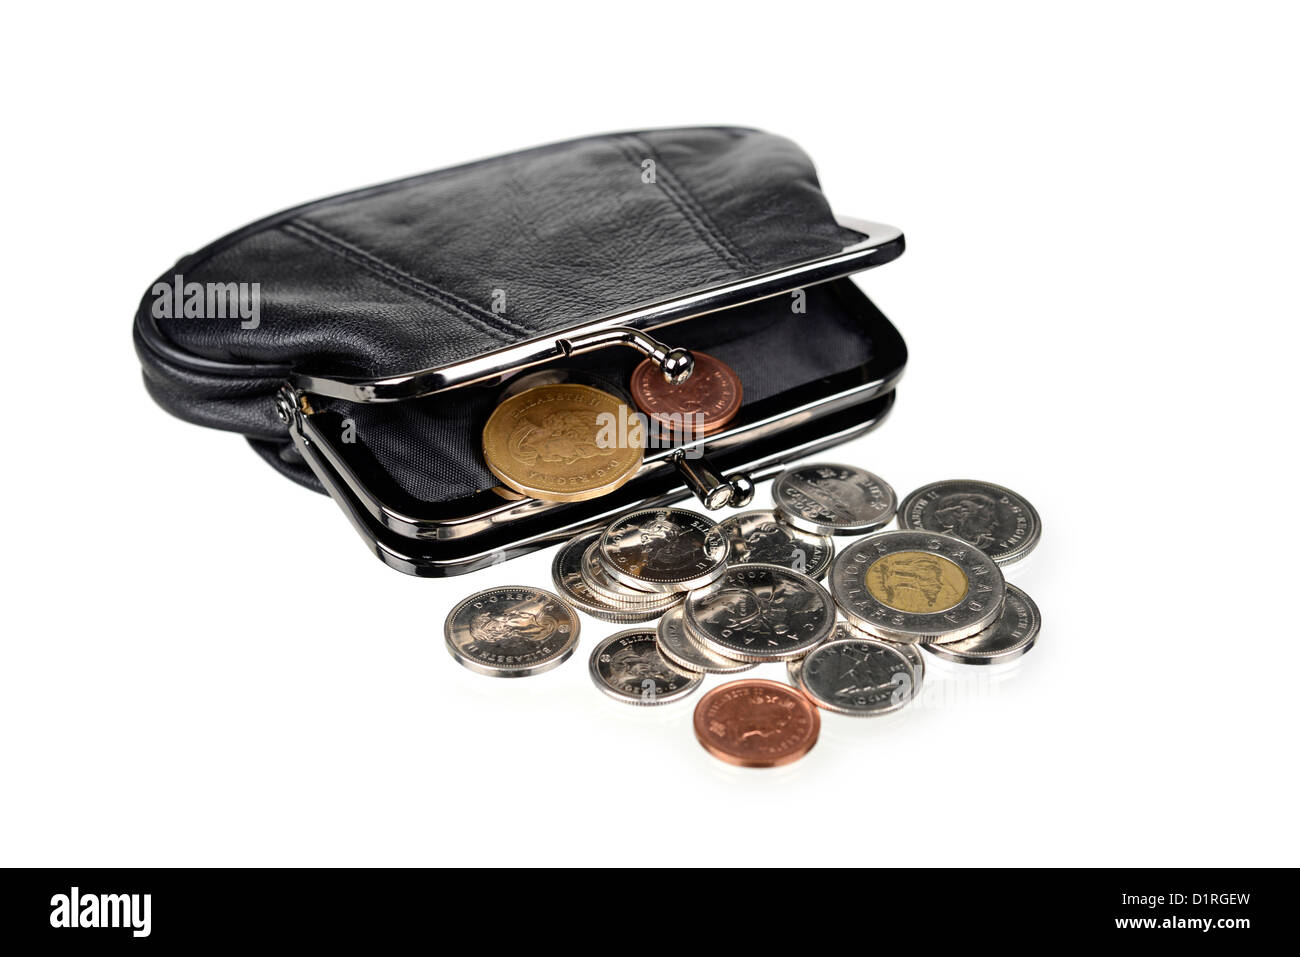 Purse with coins, Canadian money - Stock Image